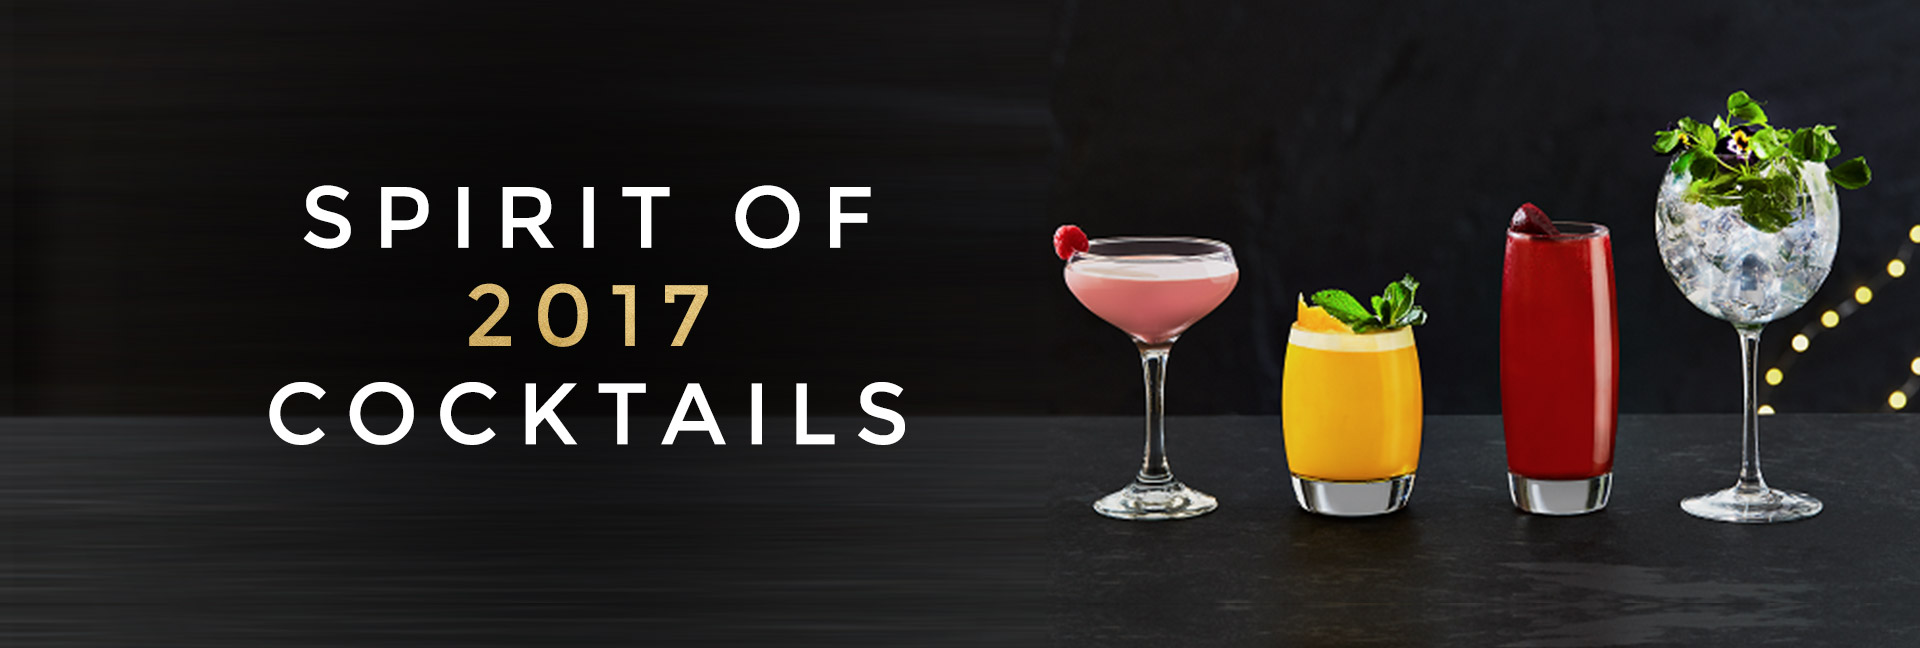 Spirit of 2017 cocktails at All Bar One Norwich